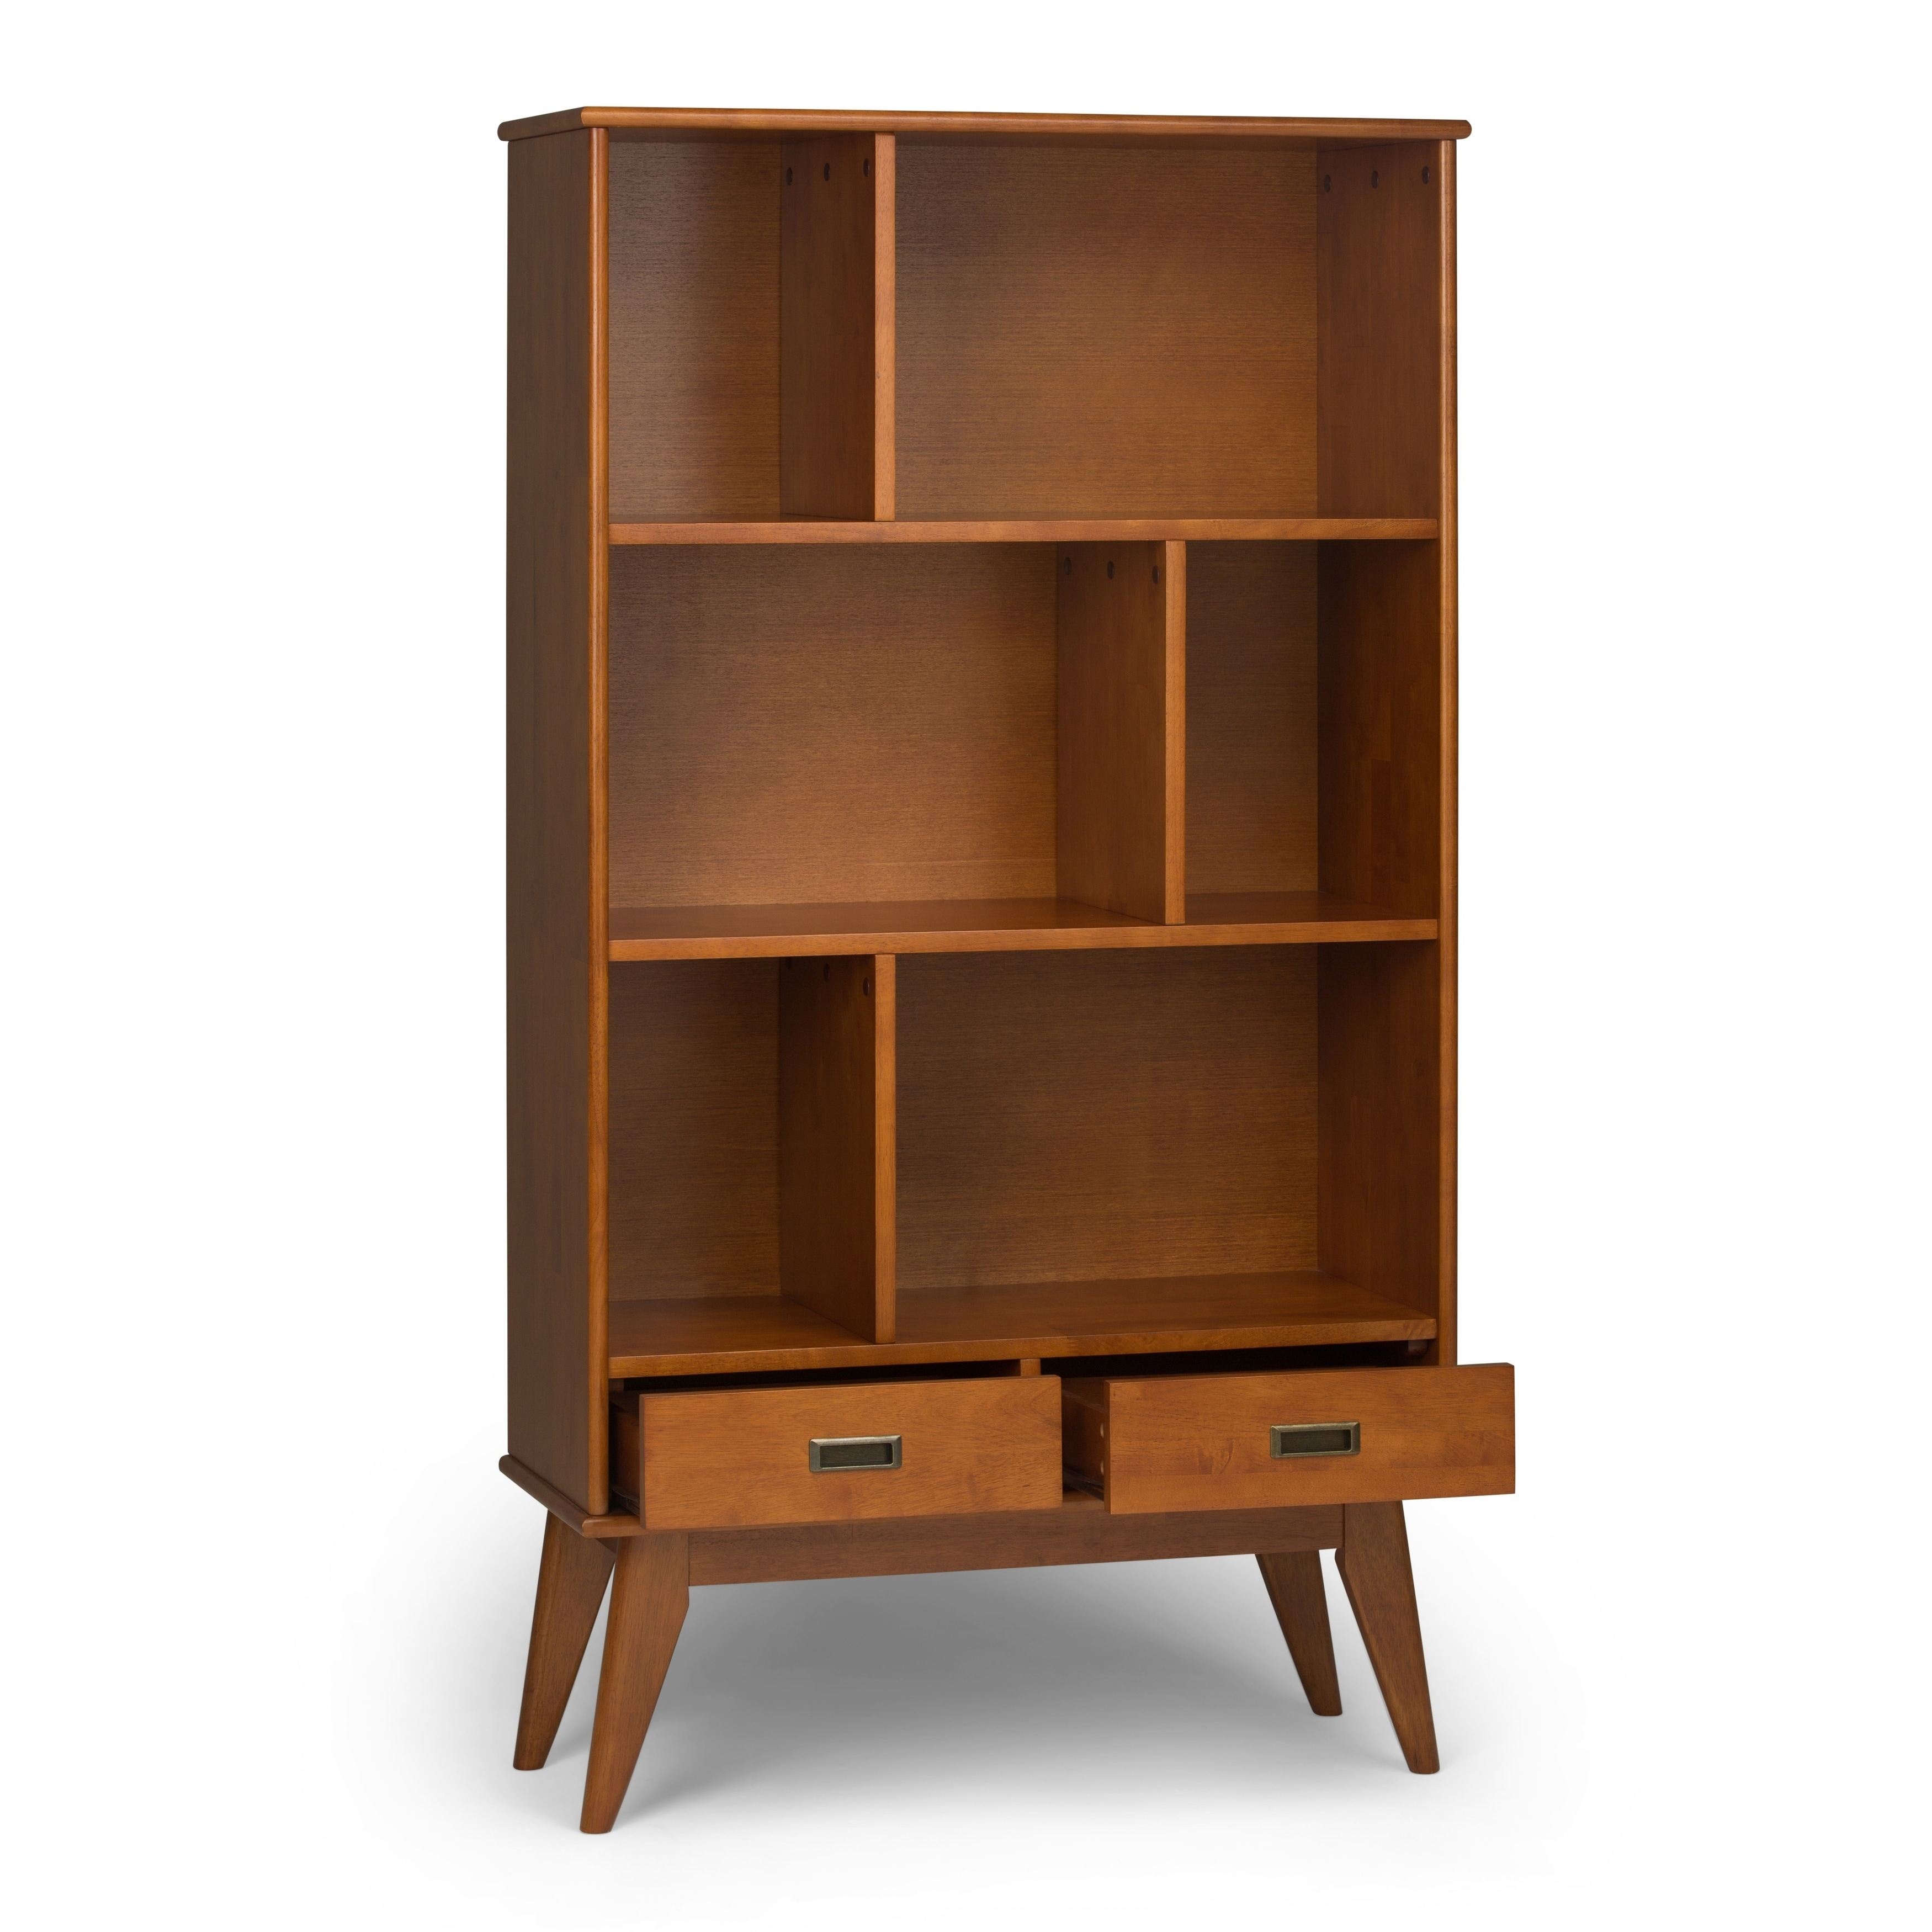 category shelf farmhouse do wide ladder world bookshelves double bookcase home market bookcases wood furniture office two xxx